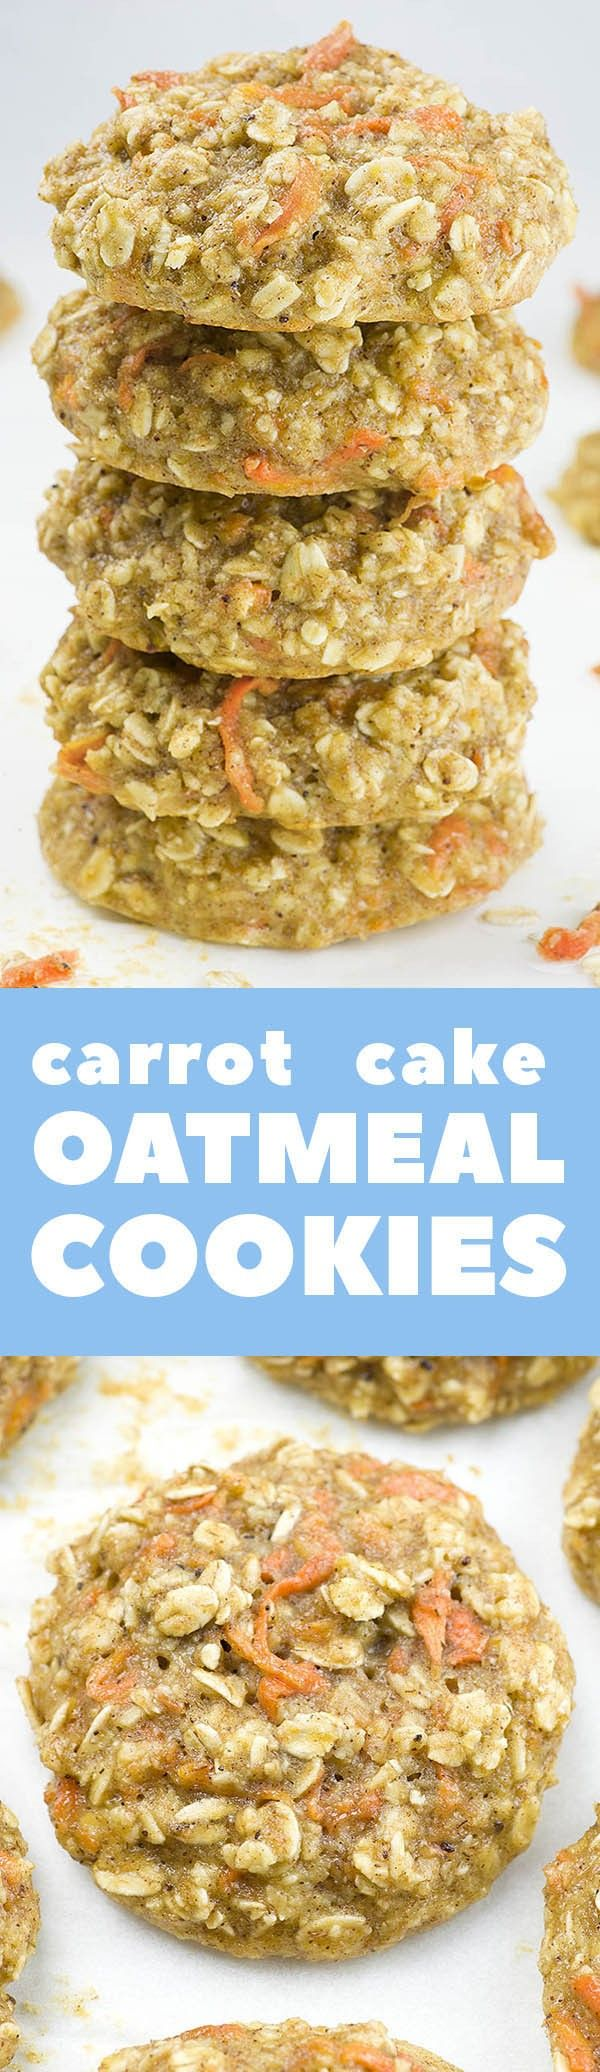 Get the recipe Carrot Cake Oatmeal Cookies @recipes_to_go